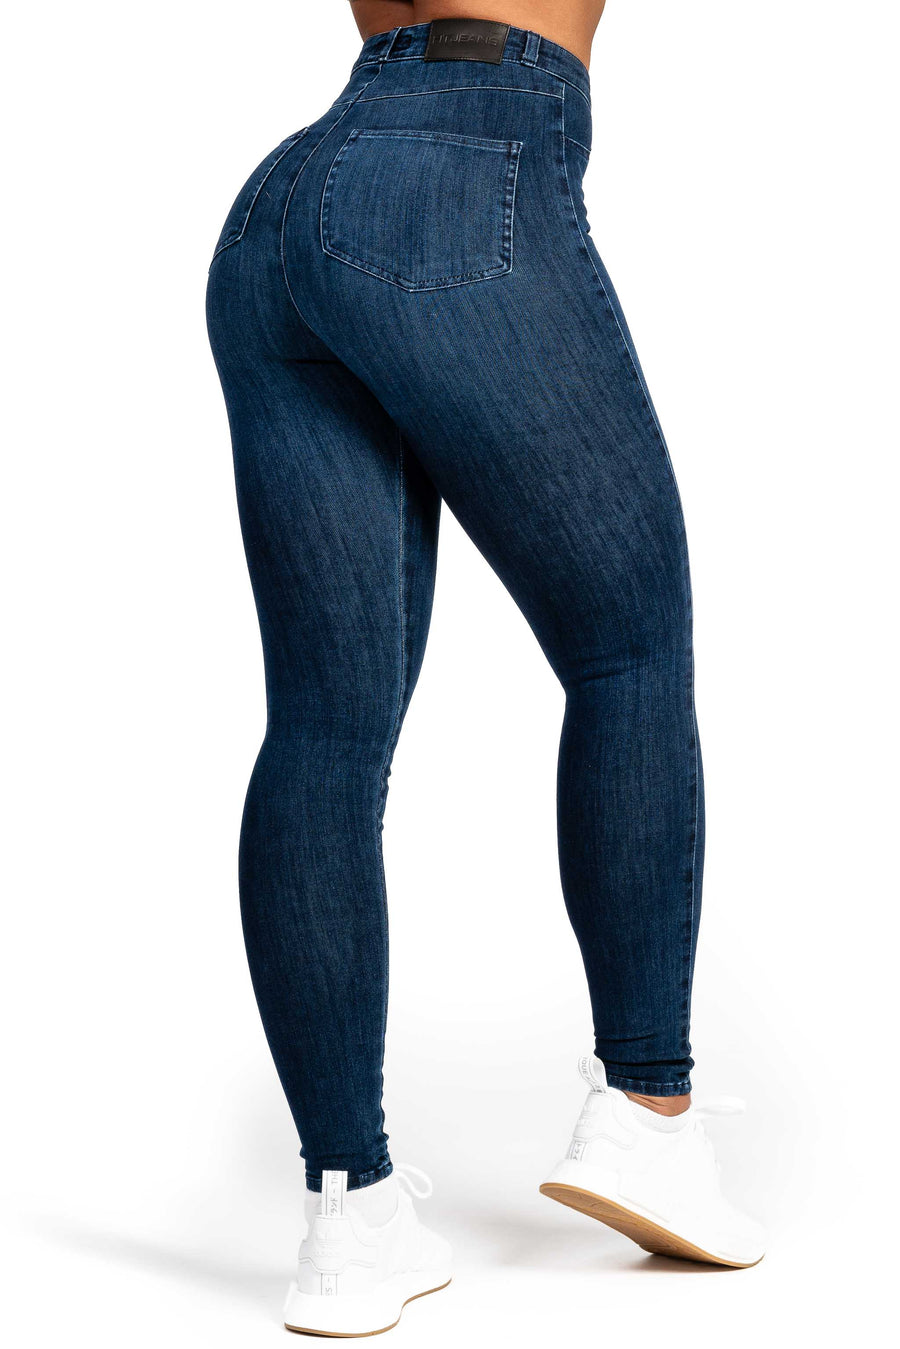 Womens High Waisted 360 Fitjeans - Midnight Navy